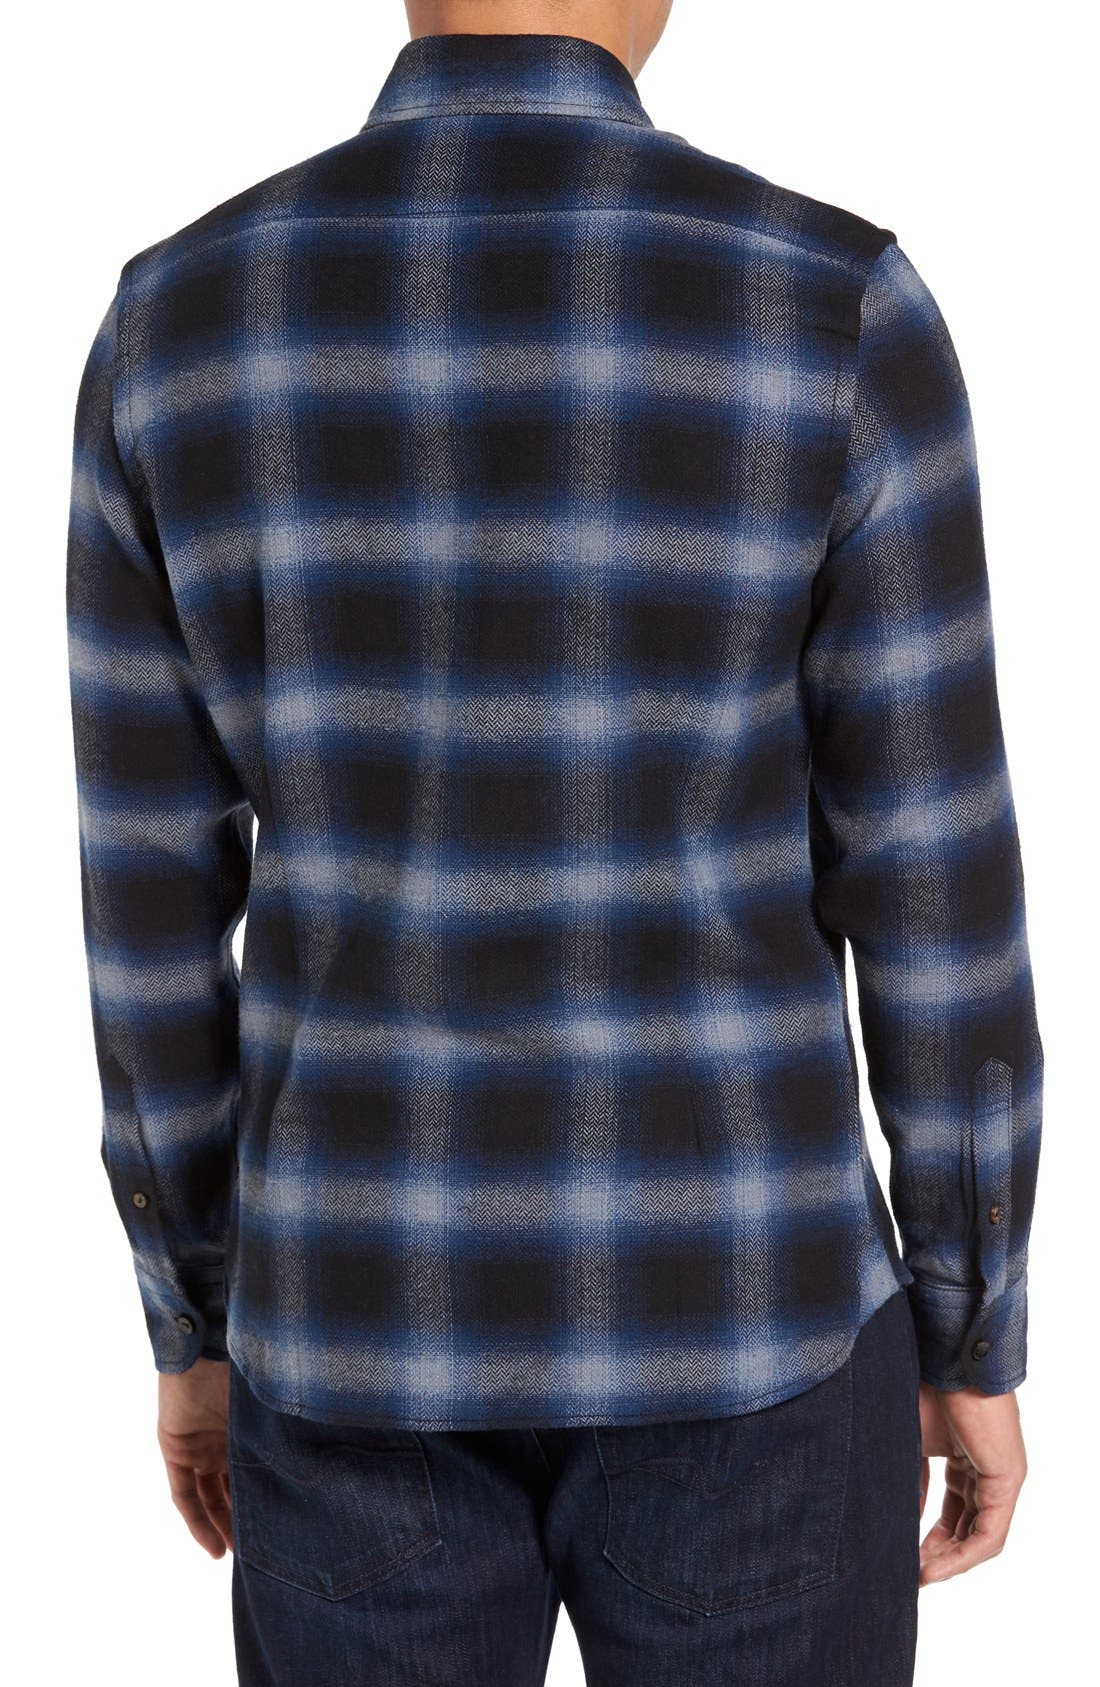 Michael Slim Fit Plaid Flannel Shirt,                             Alternate thumbnail 2, color,                             Blue